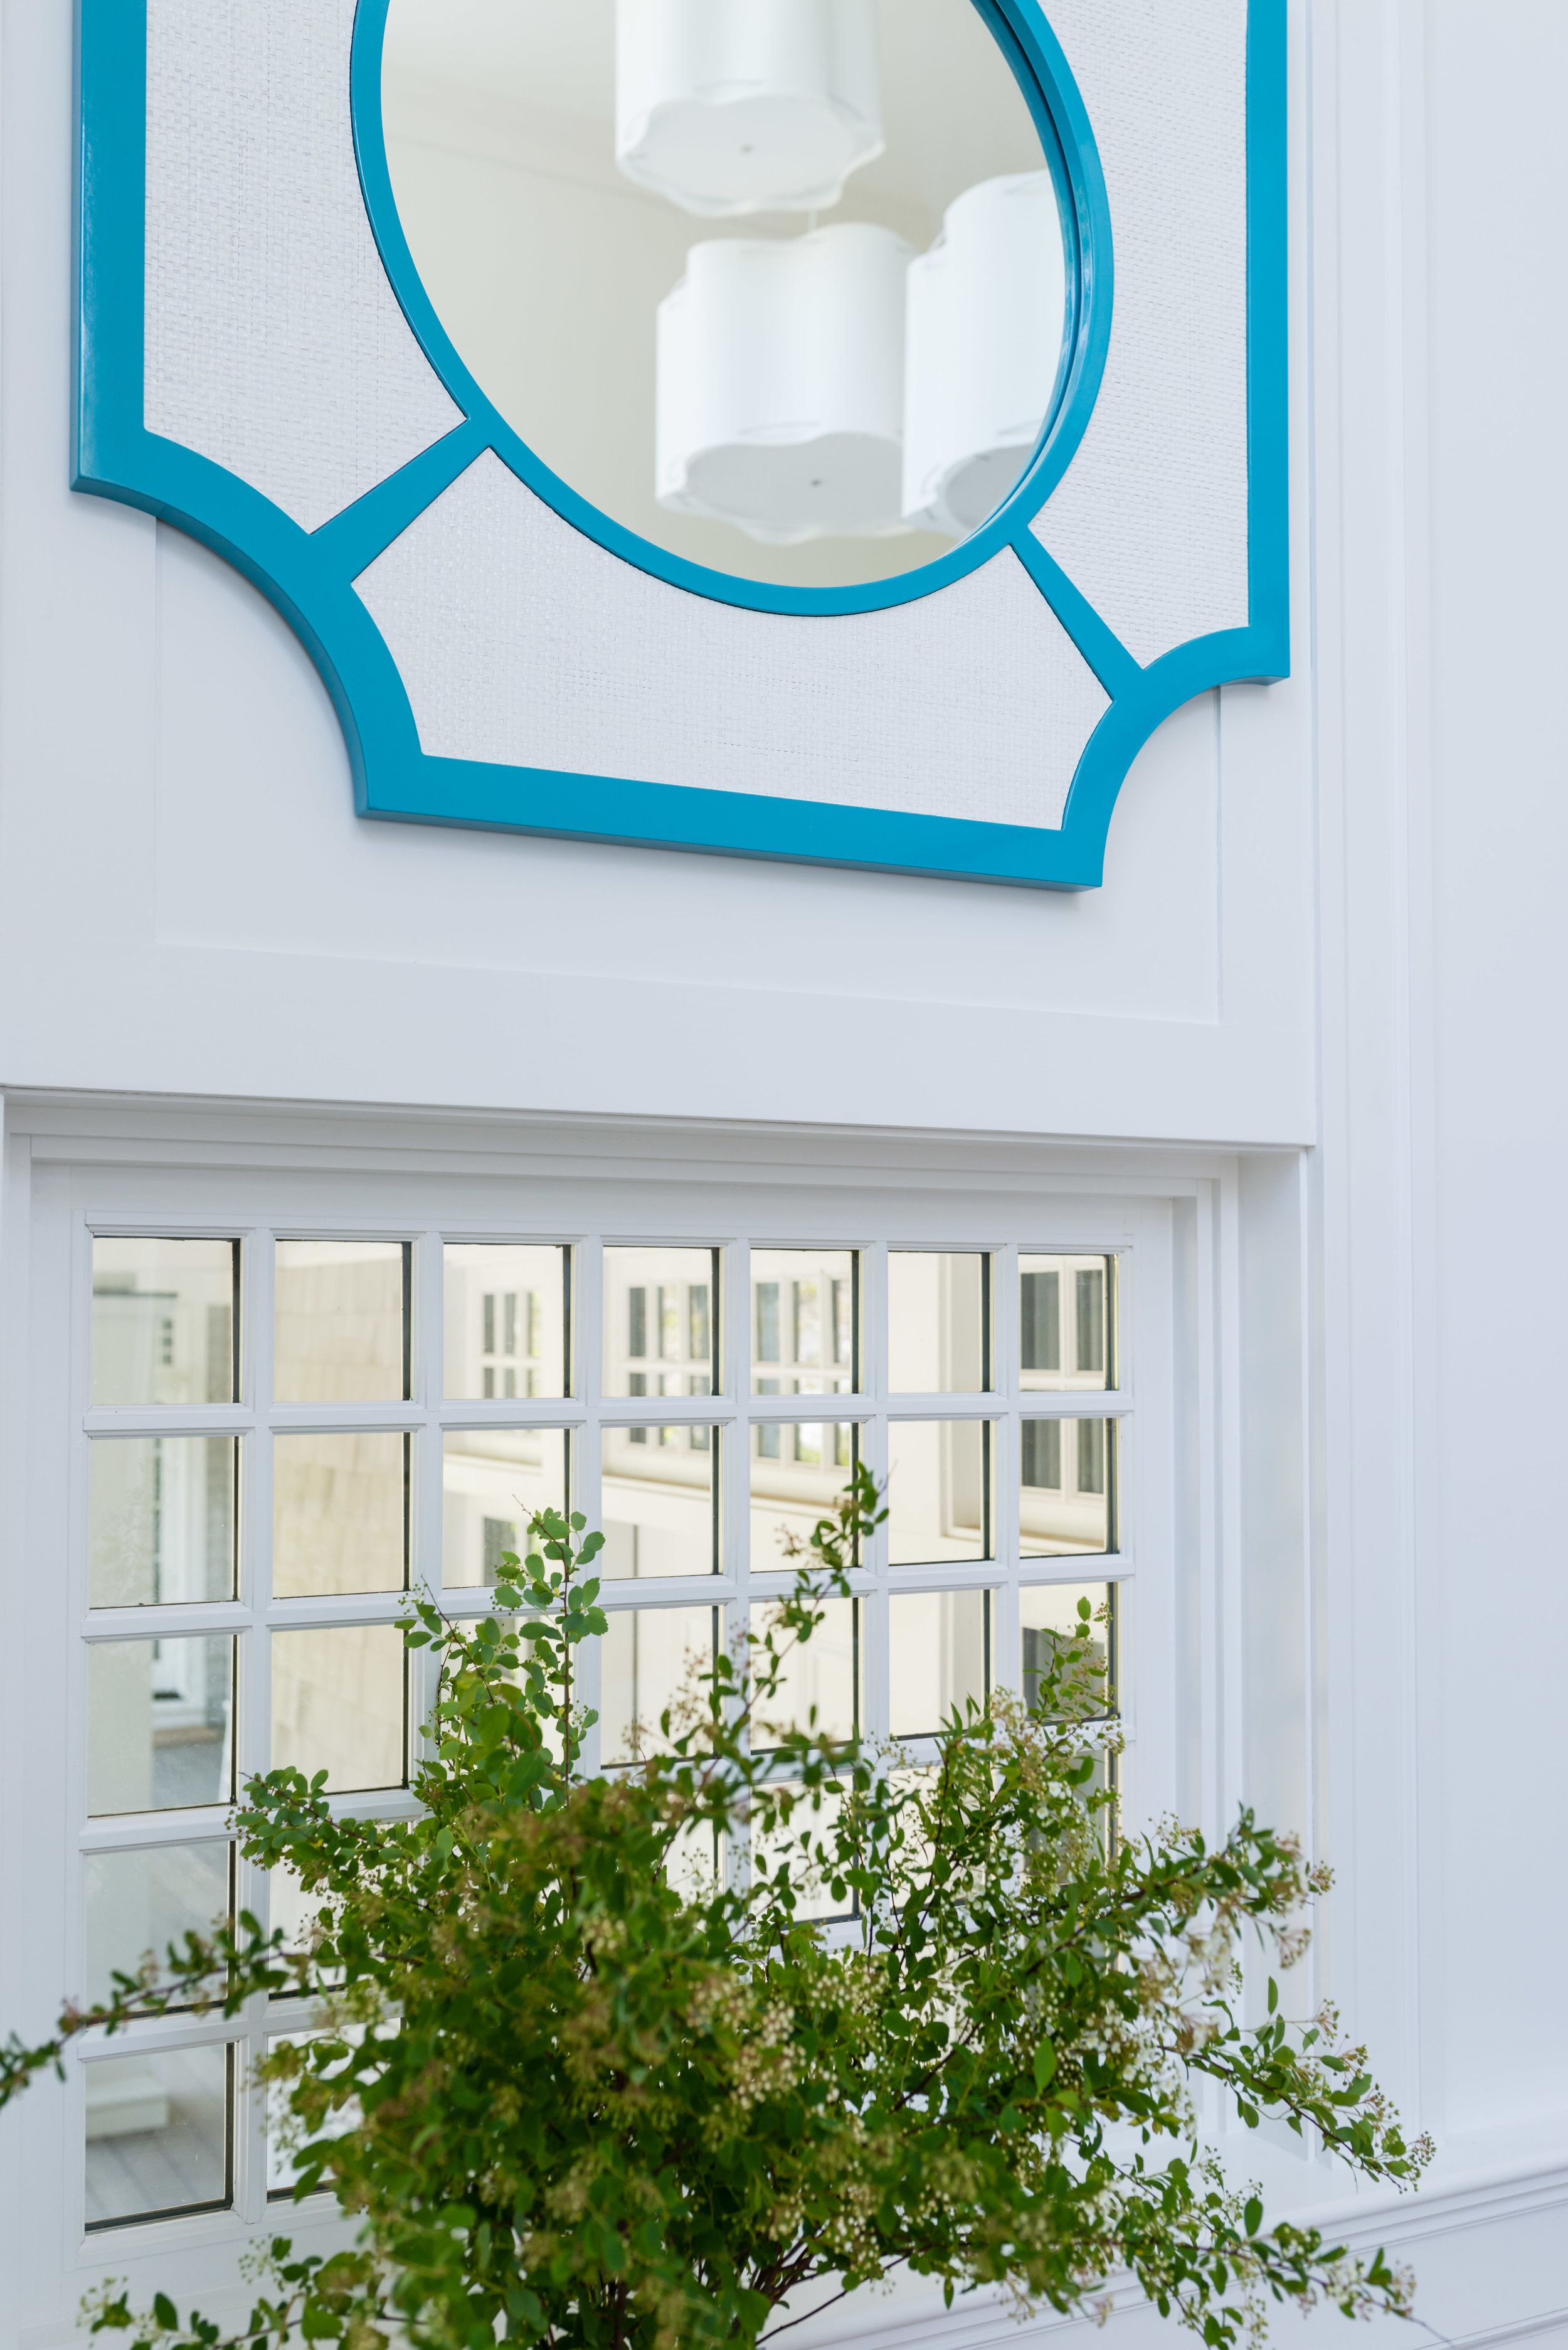 Lyford mirror in custom color, white-washed raffia by  Oomph . Design:  Justine Sterling Design  // Photo:  Jessica Delaney